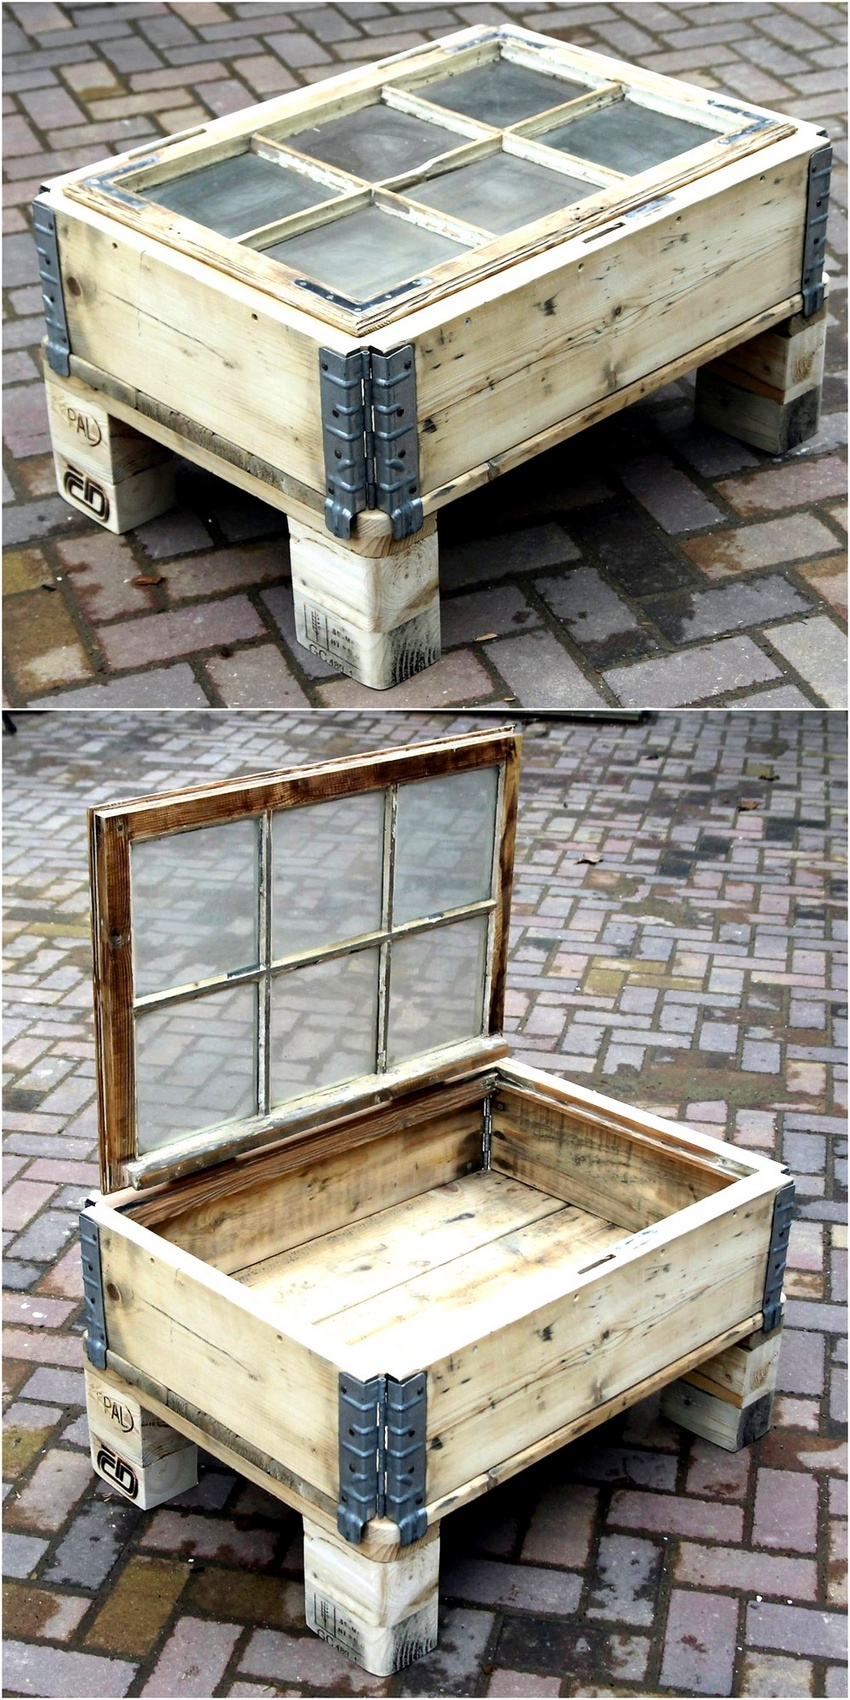 Creative Pallet Recycling Ideas by Lucie's Palettenmöbel ... on Pallets Design Ideas  id=25216